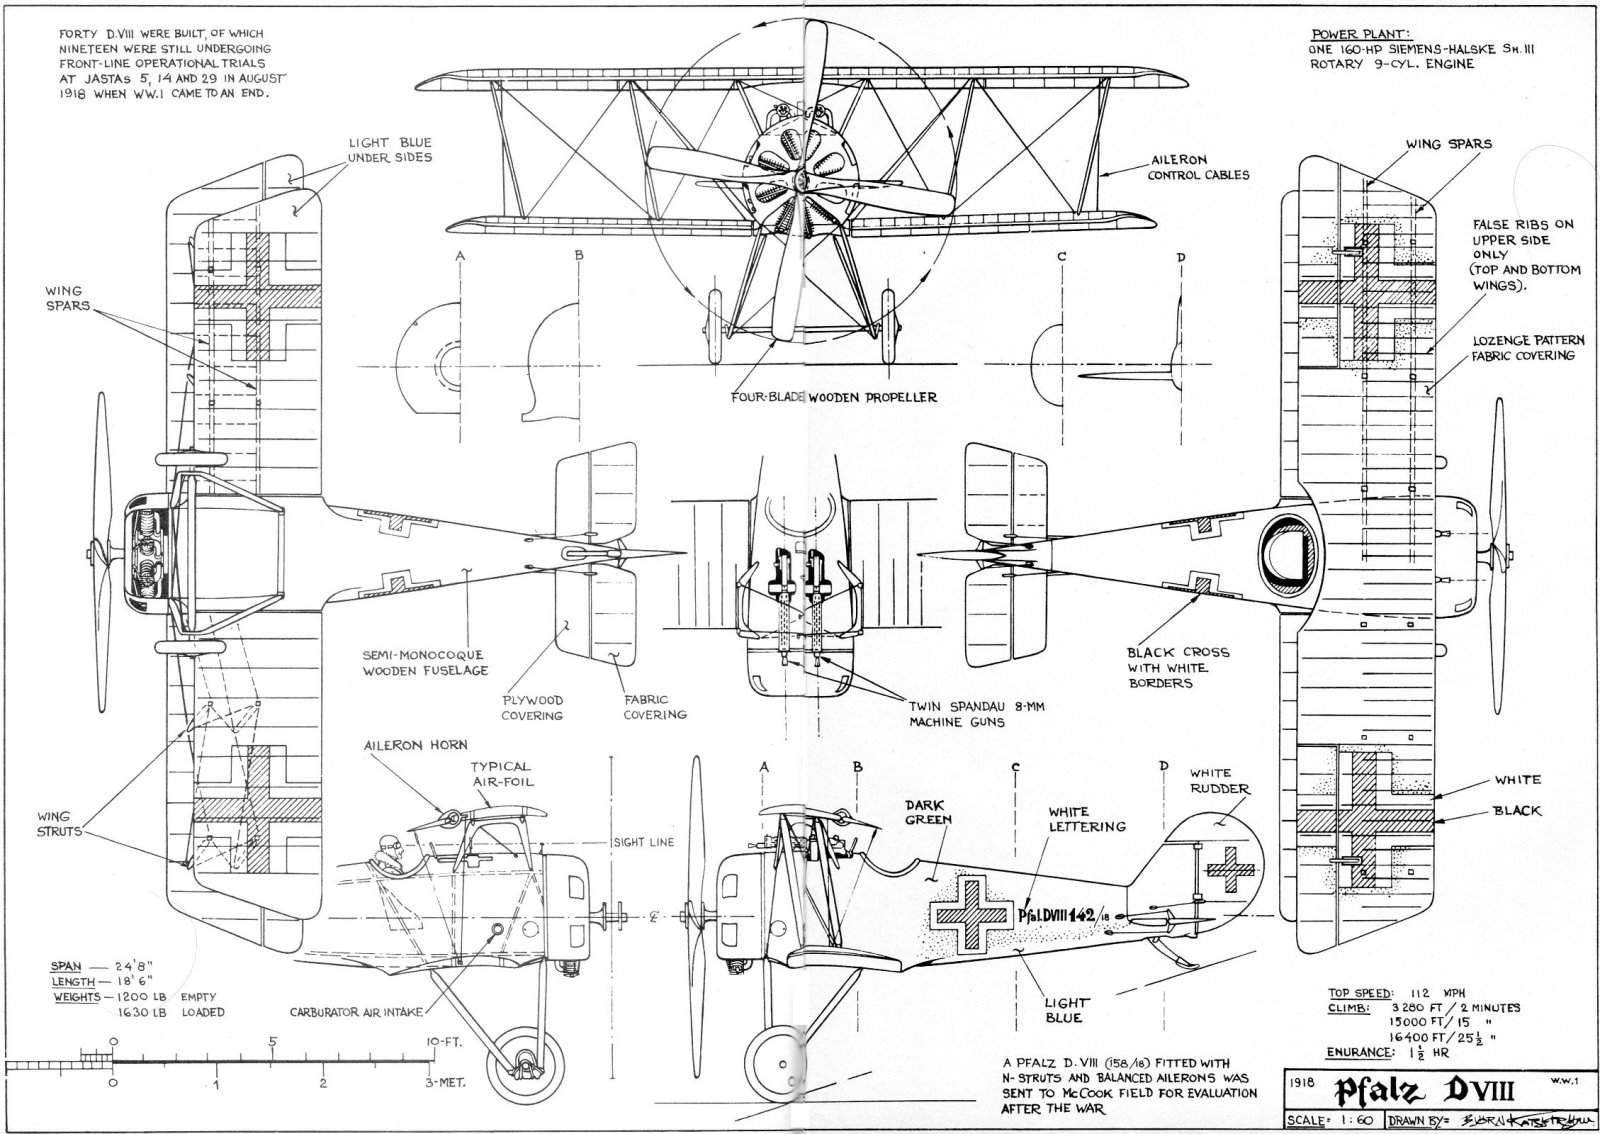 3 View Aircraft Drawings